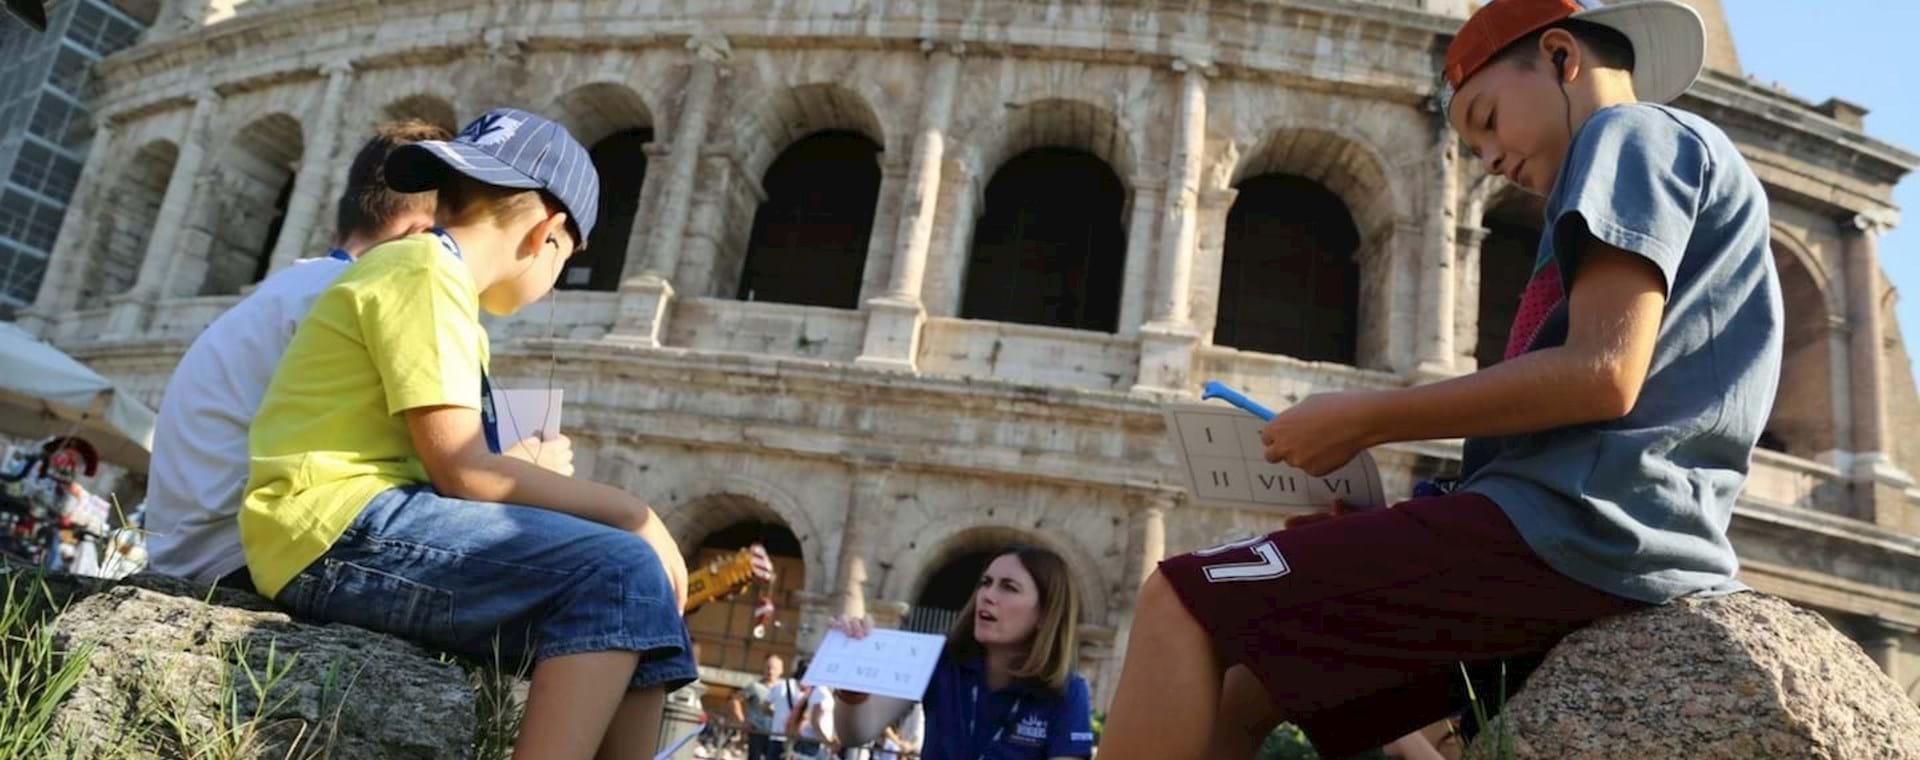 Interactive Colosseum for Families Tour